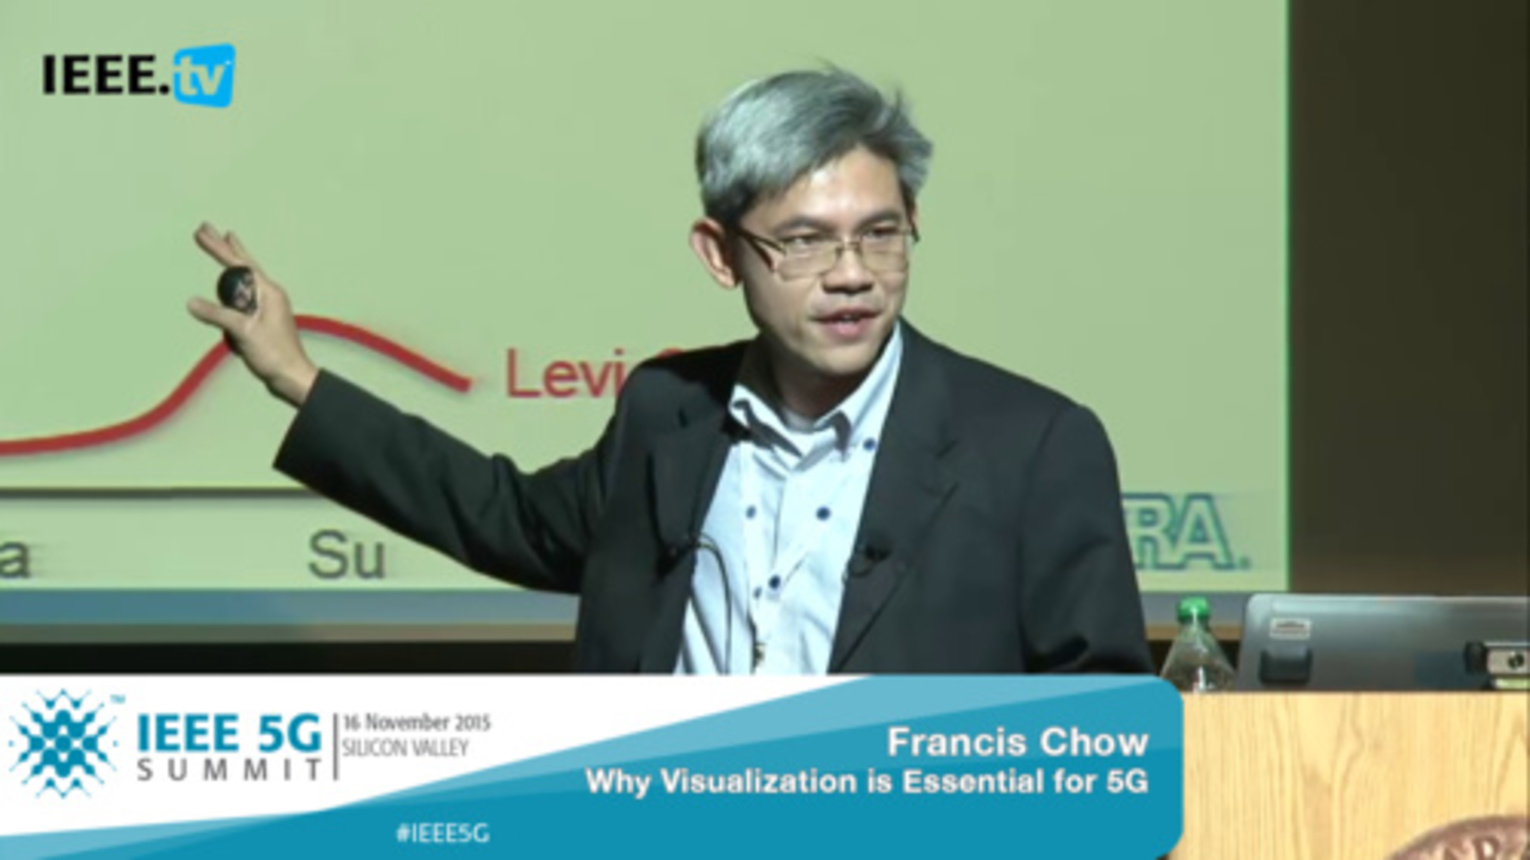 Silicon Valley 5G Summit 2015 - Francis Chow - Why Virtualization is Essential for 5G